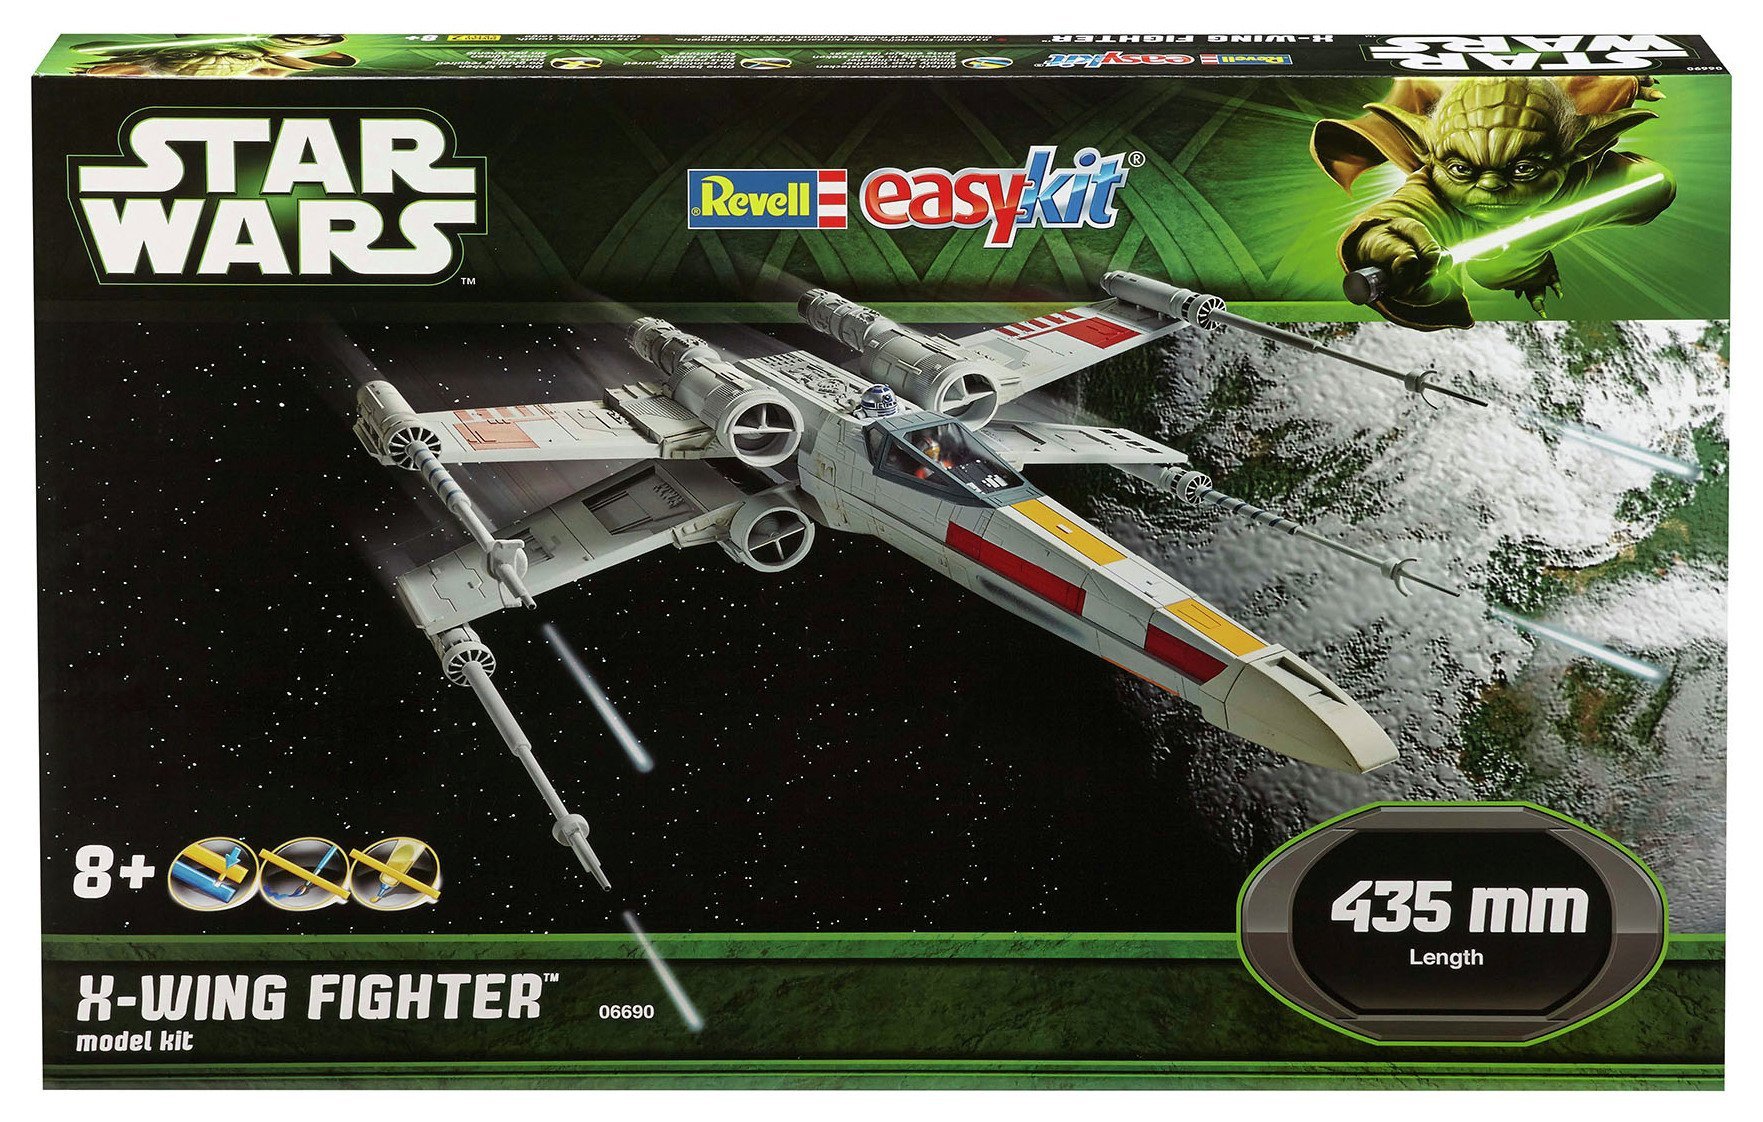 revell-star-wars-x-wing-fighter-easykit